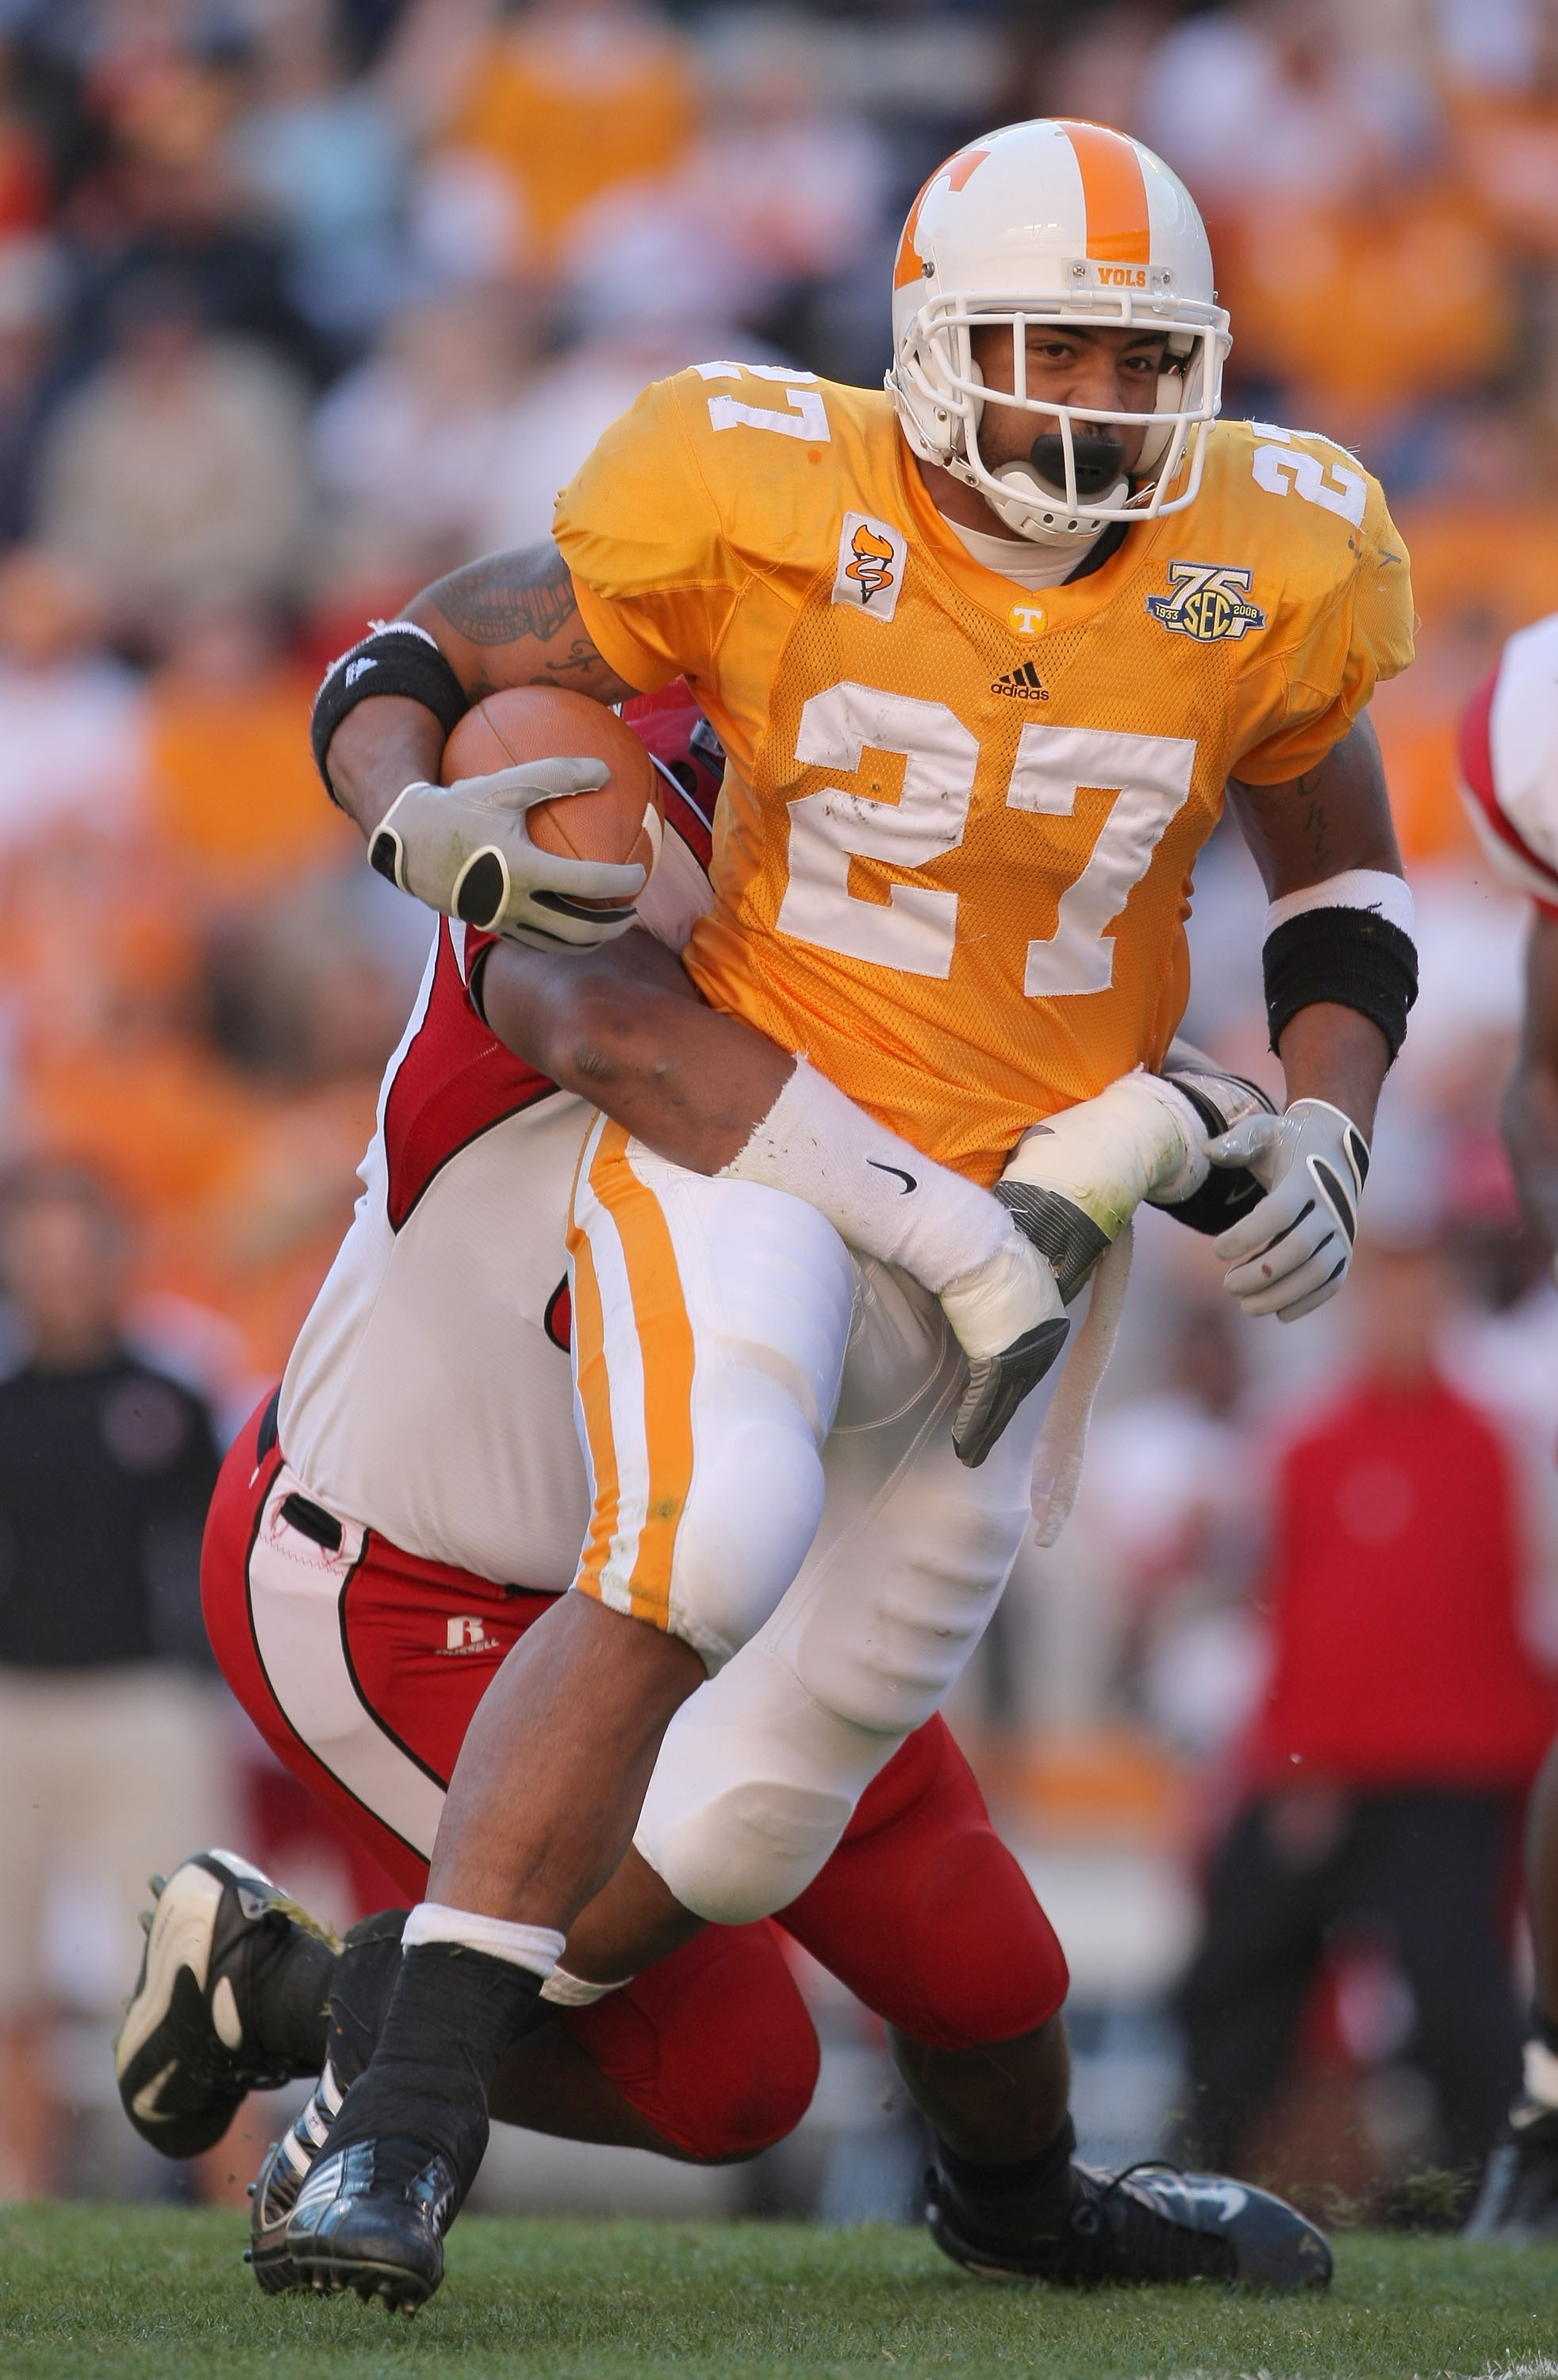 KNOXVILLE, TN - NOVEMBER 03:  Arian Foster #27 of the Tennessee Volunteers carries the ball against the Louisiana Lafayette Cajuns during the first quarter at Neyland Stadium on November 3, 2007 in Knoxville, Tennessee.  (Photo by Harry How/Getty Images)